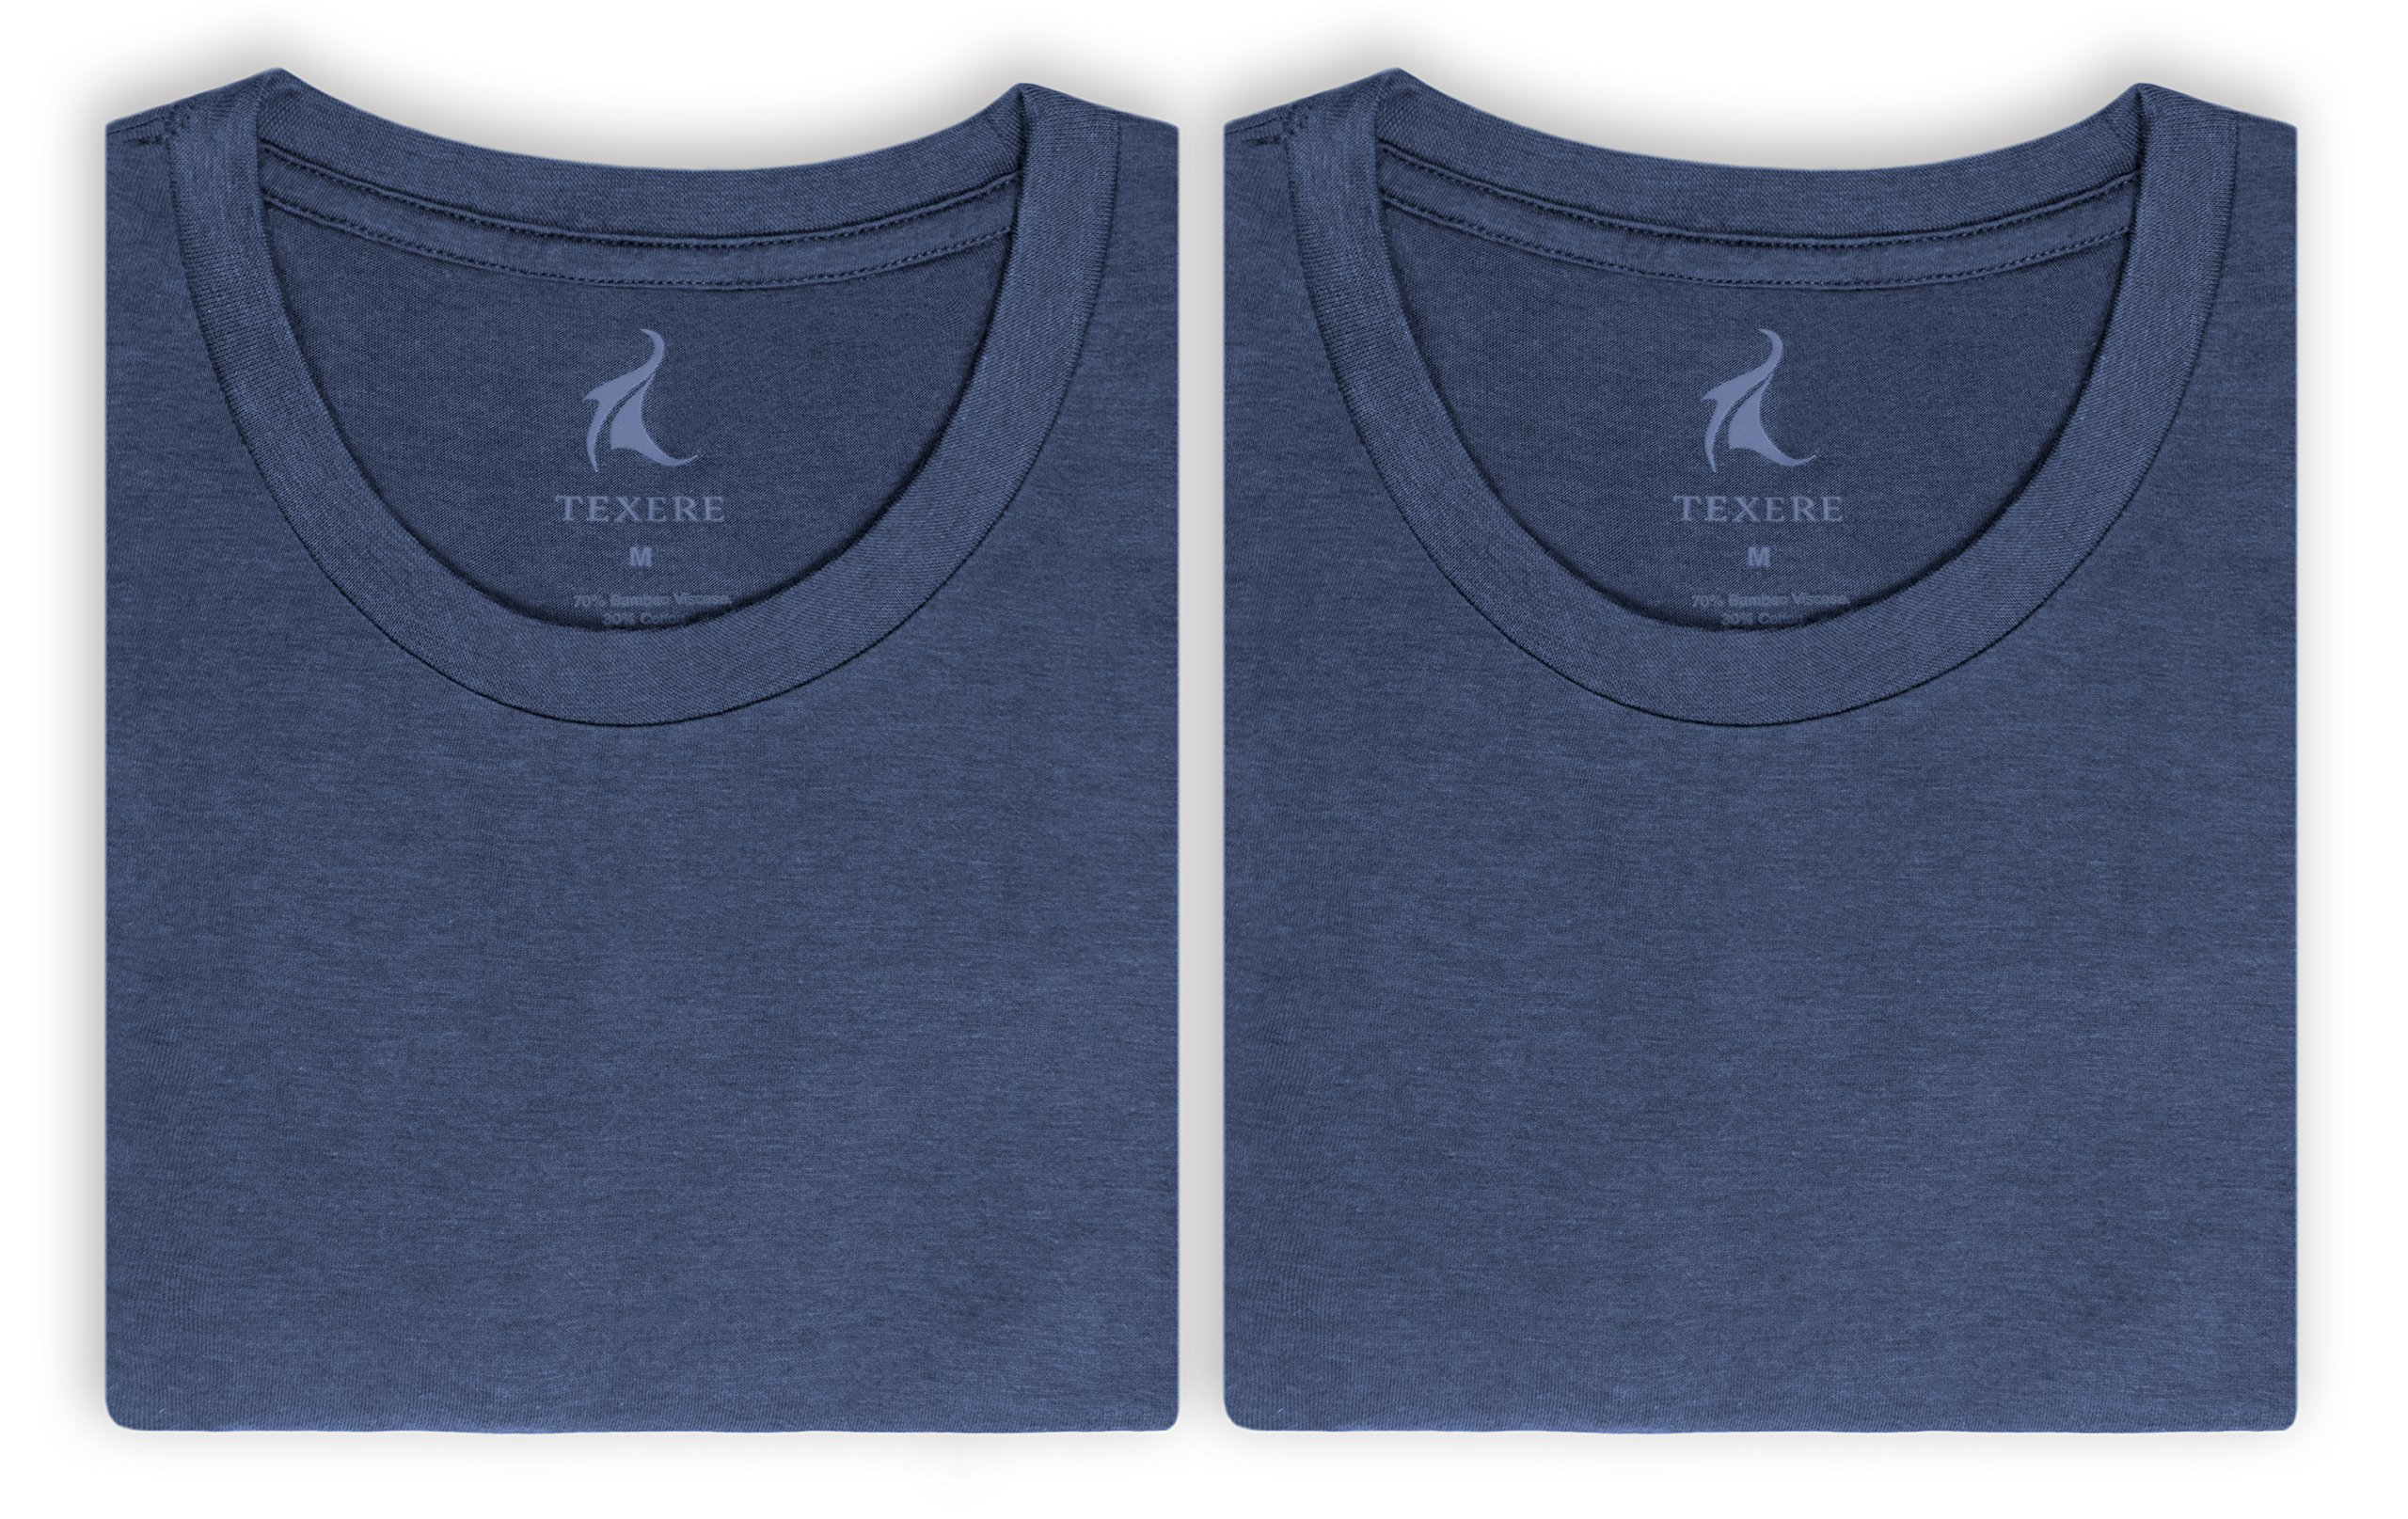 Texere Crew Neck Undershirt for Men (Dexx, Air Force Blue, M) Best Tees for Him